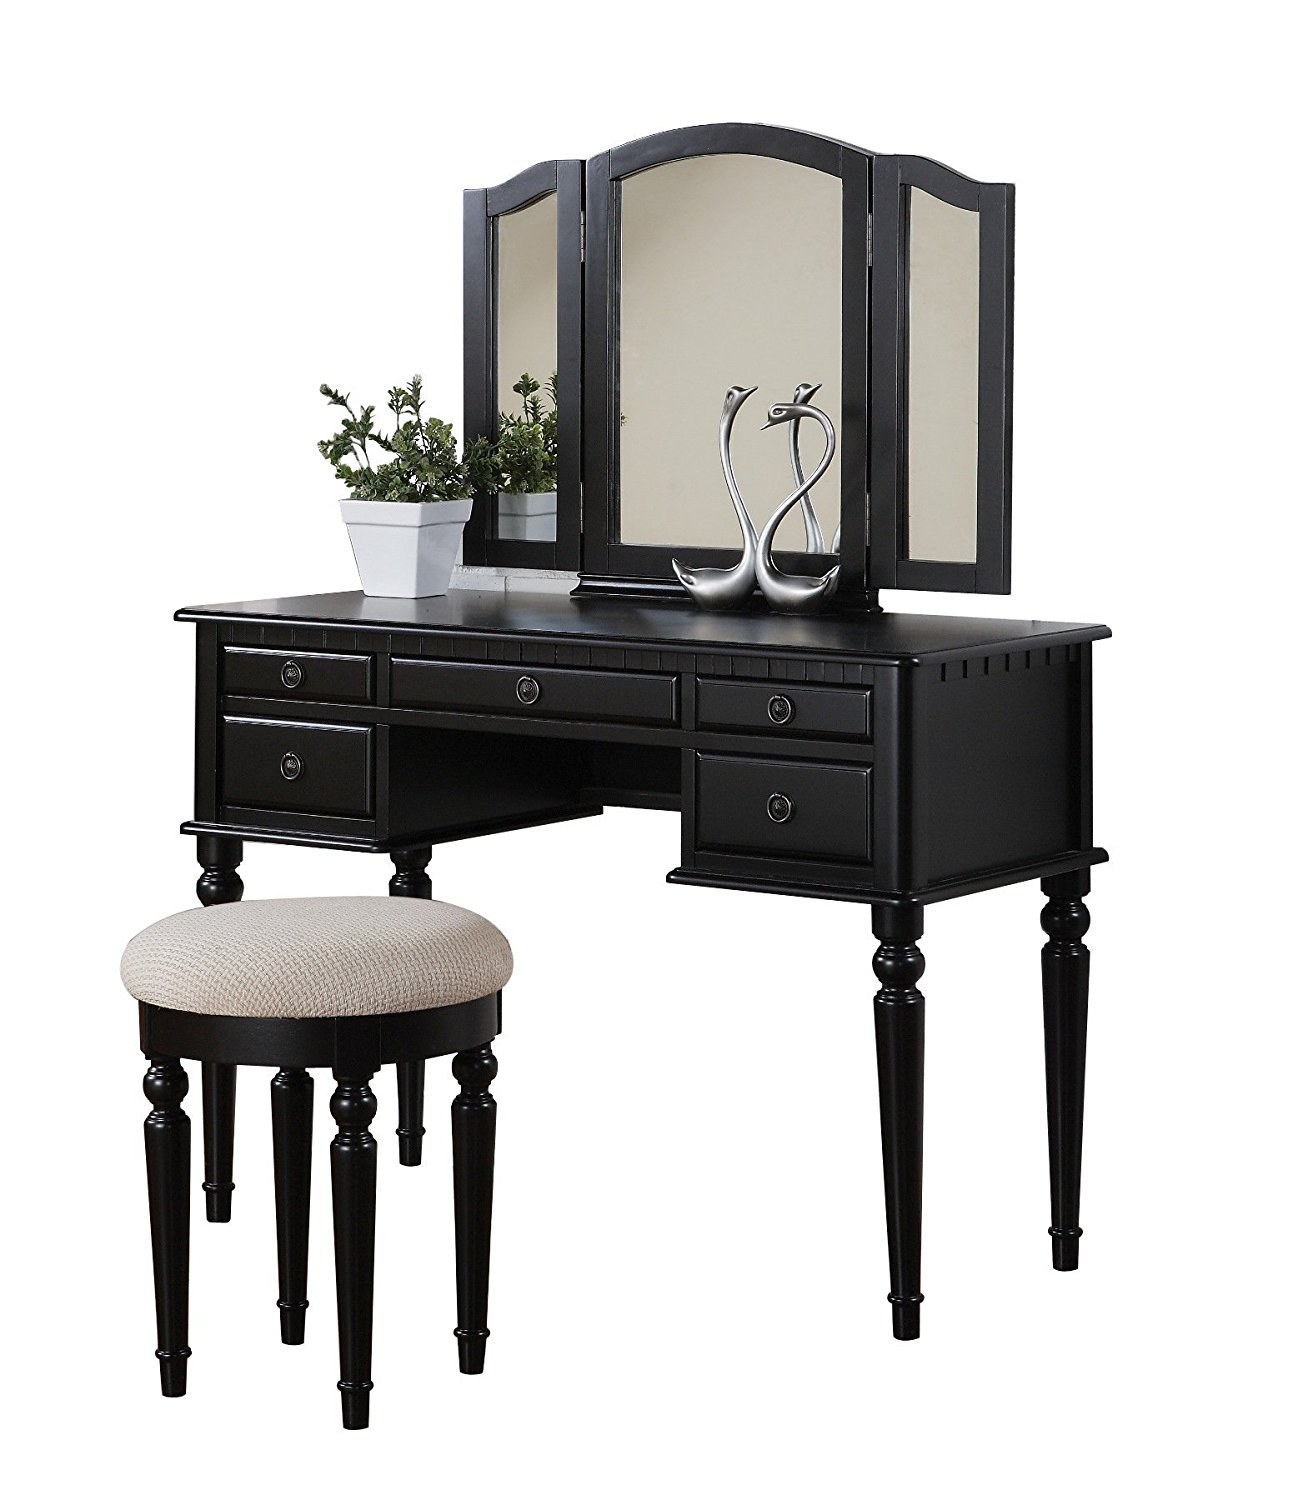 Jessica Furniture Makeup Vanity With Lights : Makeup Vanity Table With Lighted Mirror - Decor IdeasDecor Ideas